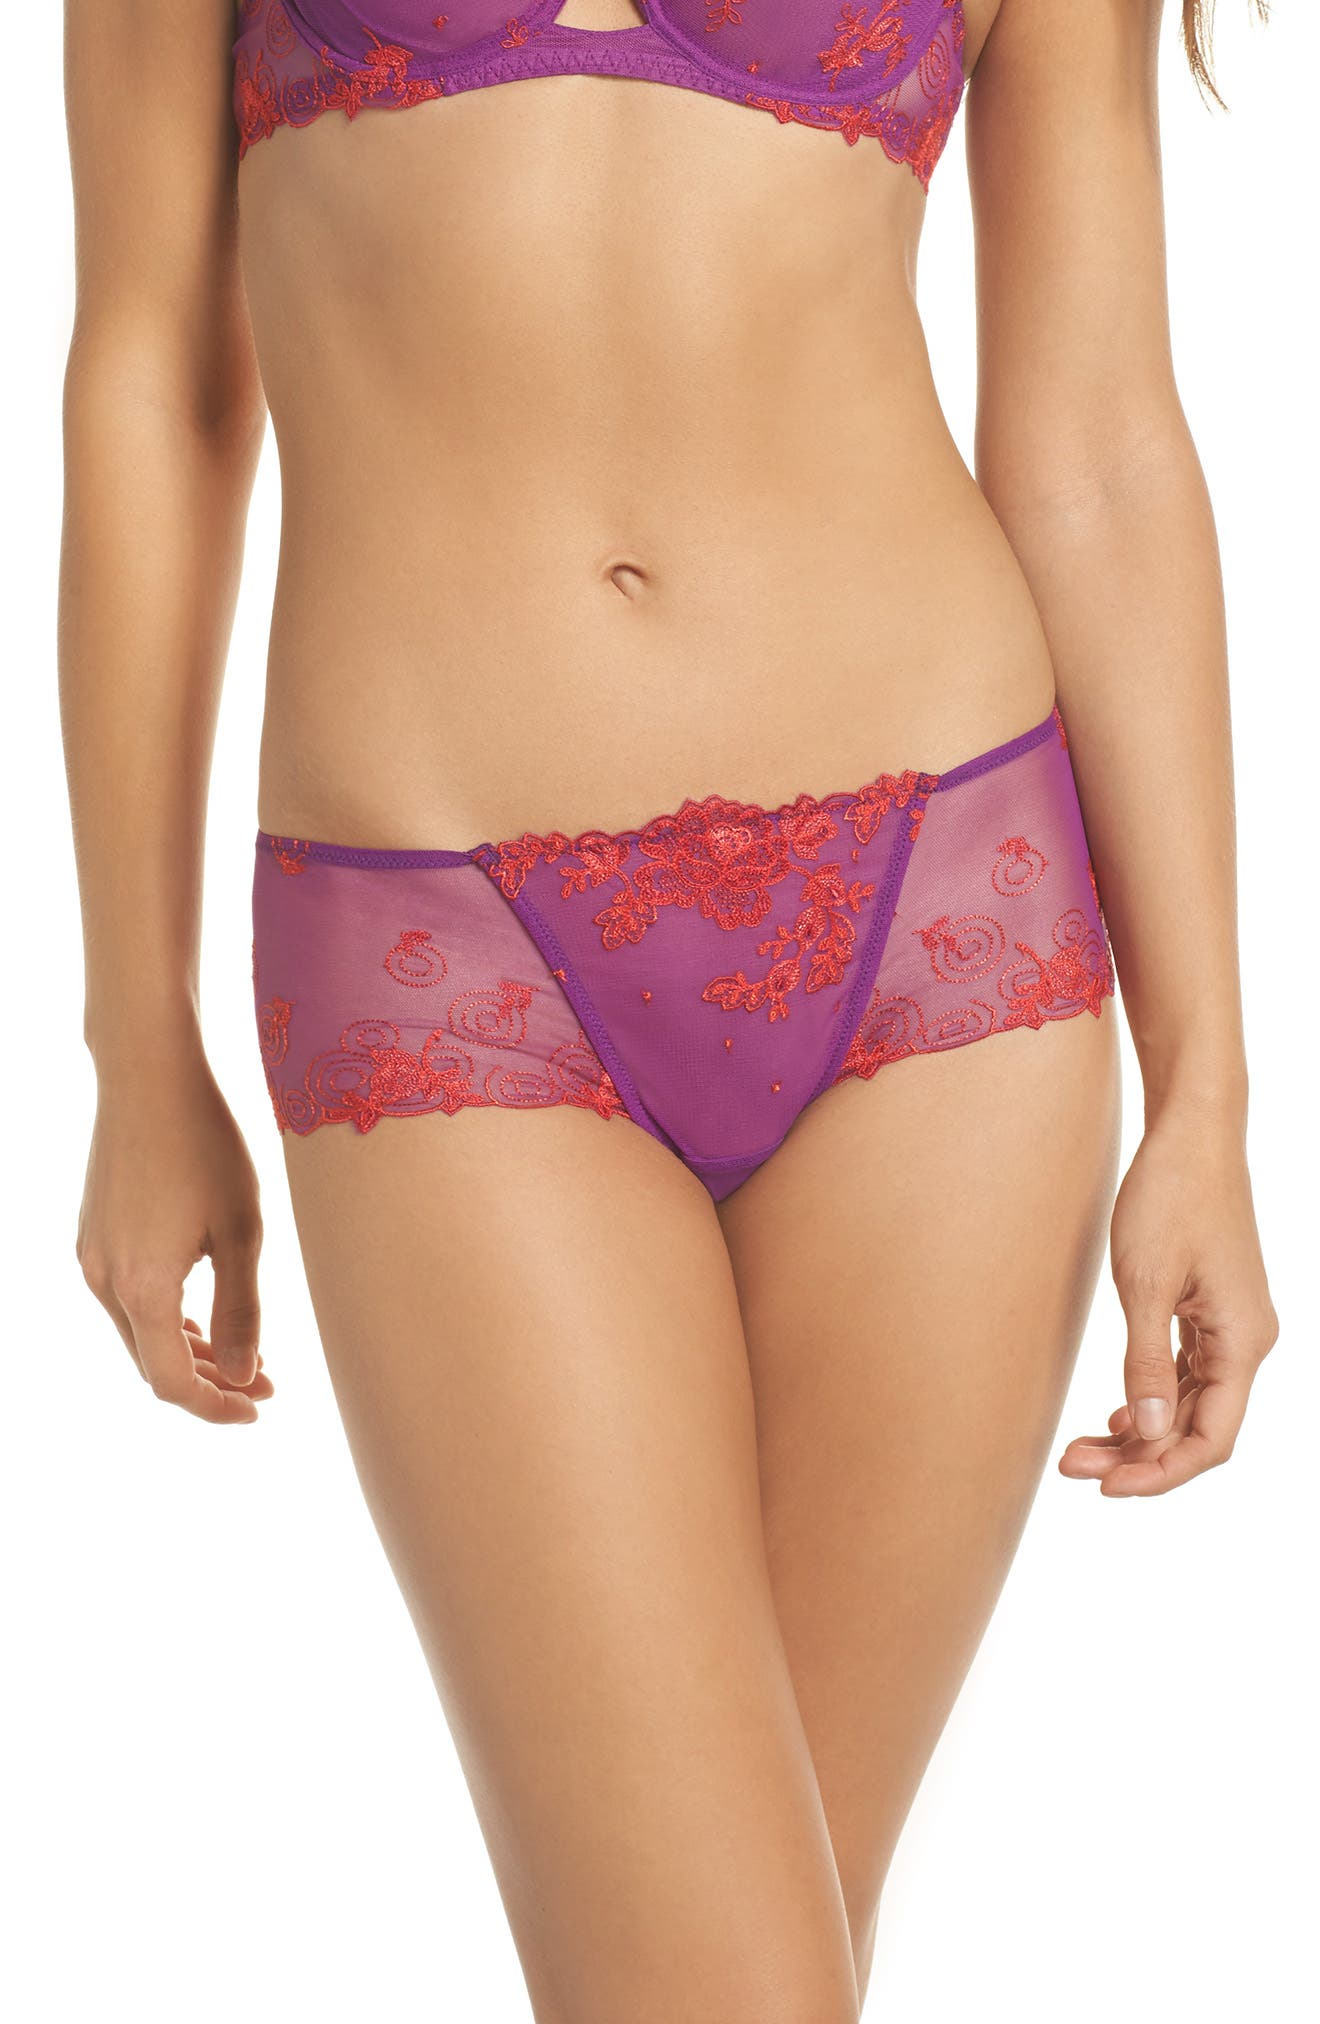 Baisers de Fleurs Boyshorts,                         Main,                         color, 930